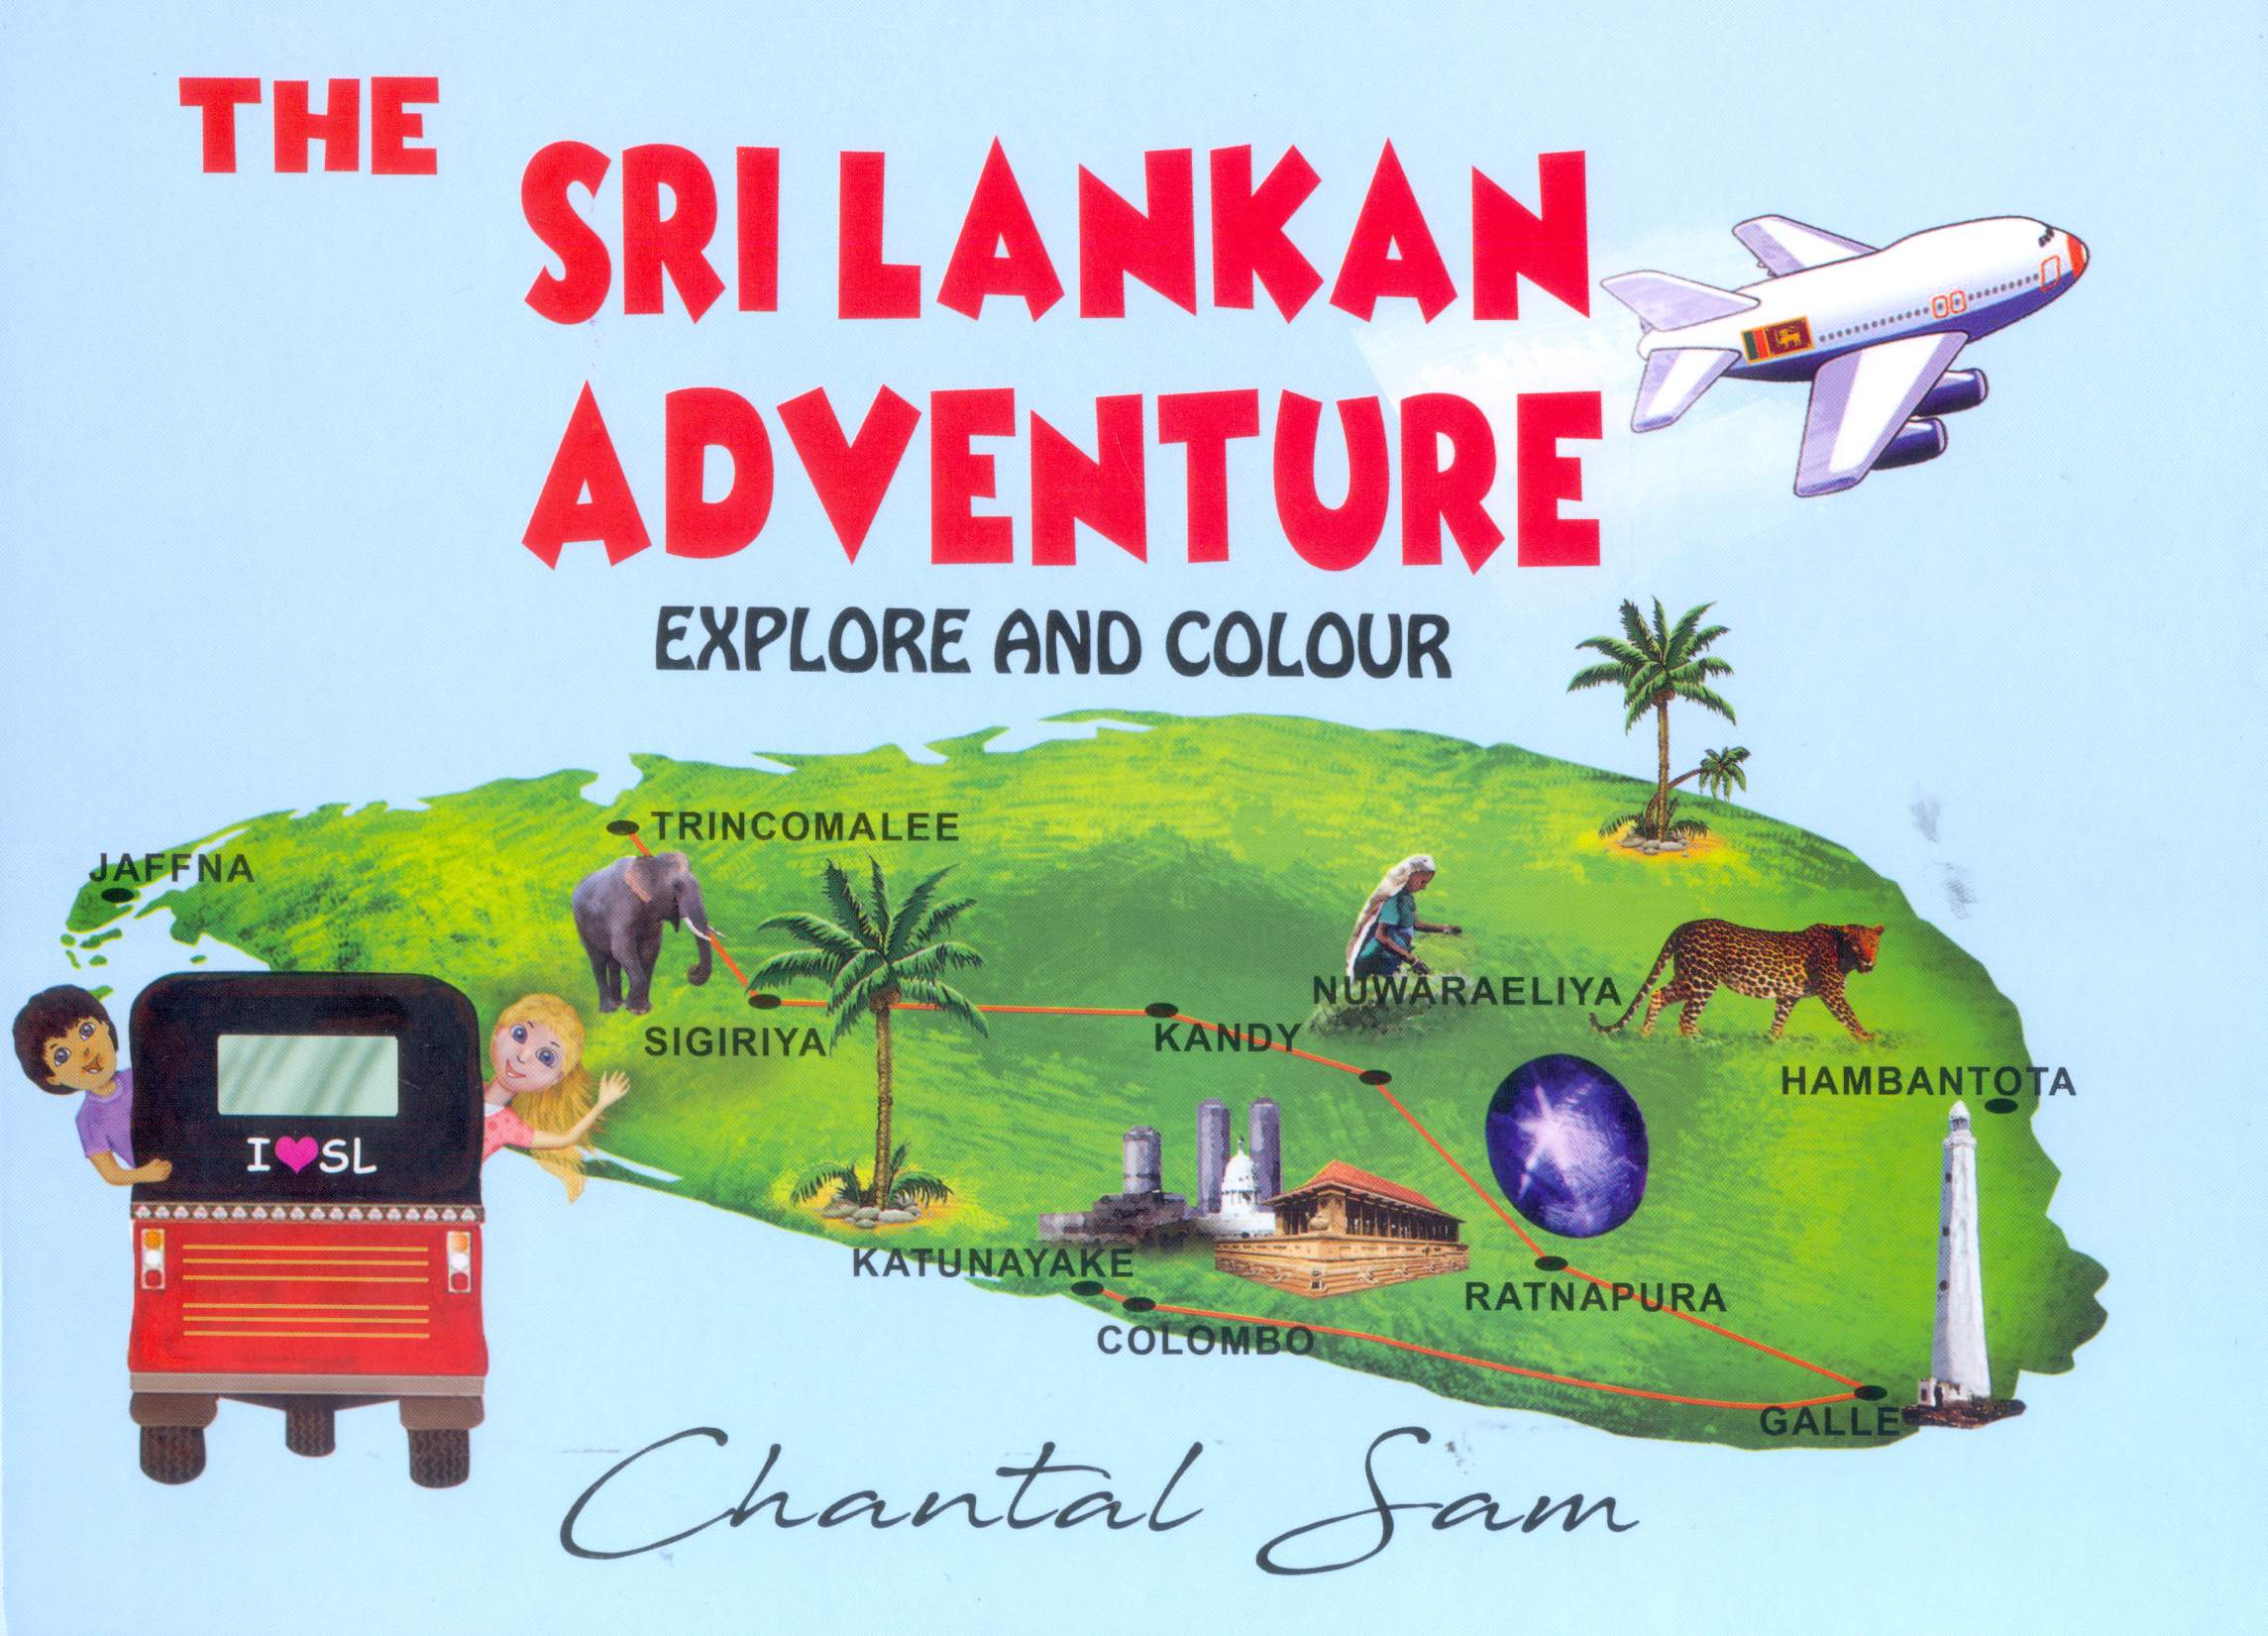 The Sri Lankan Adventure